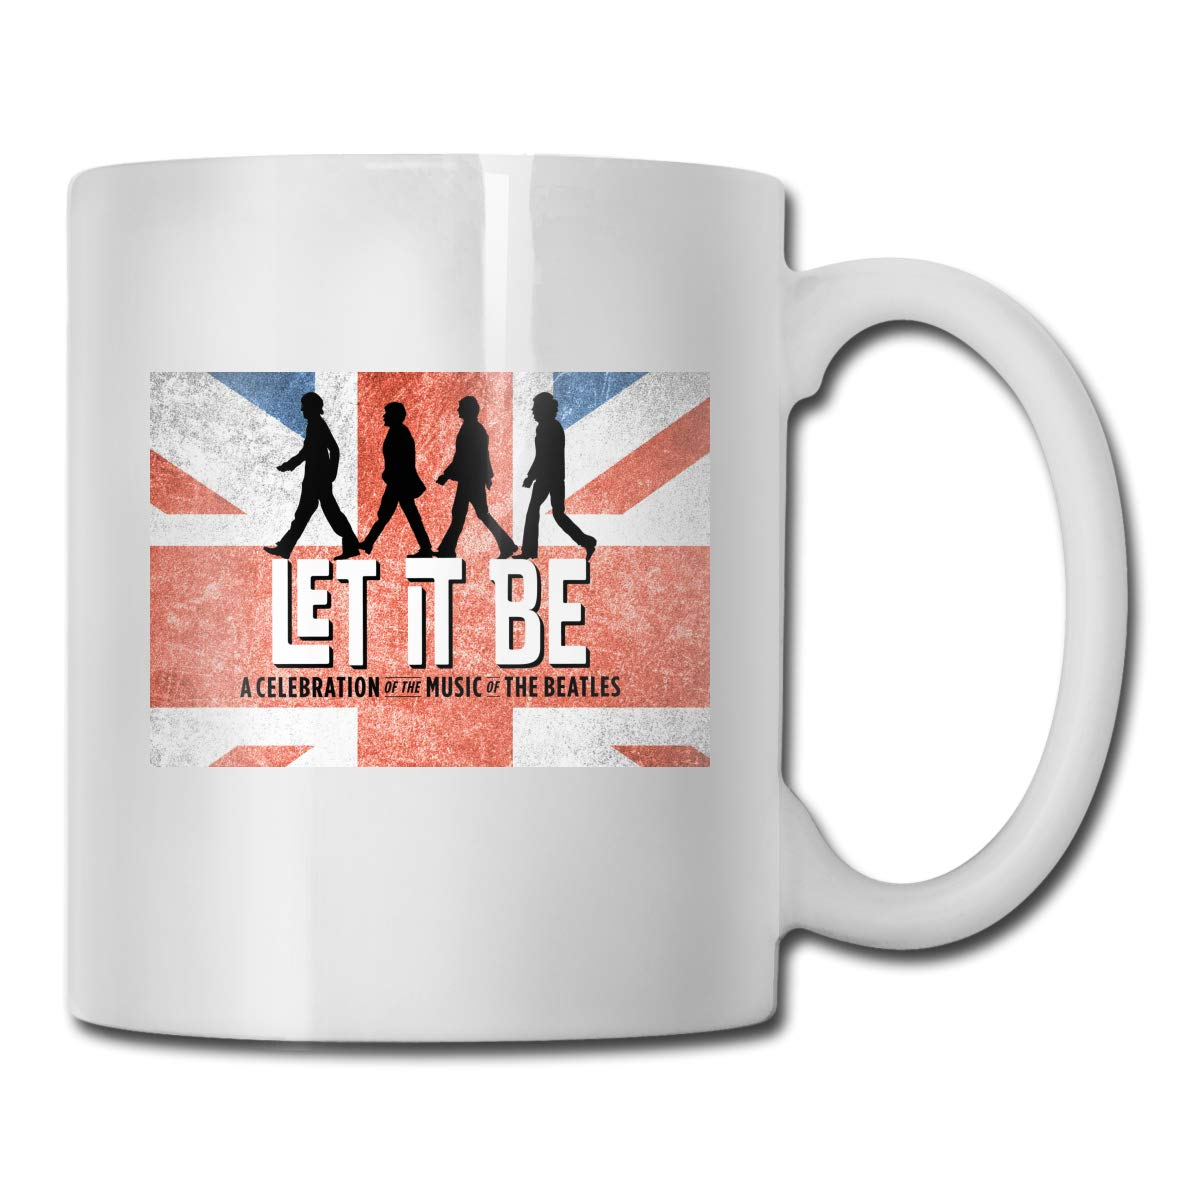 Office Coffee Cup TheBeatlesLetItBe Geblackus 14.72 OZ Capacity Mug is Perfect for CoffeeWhite